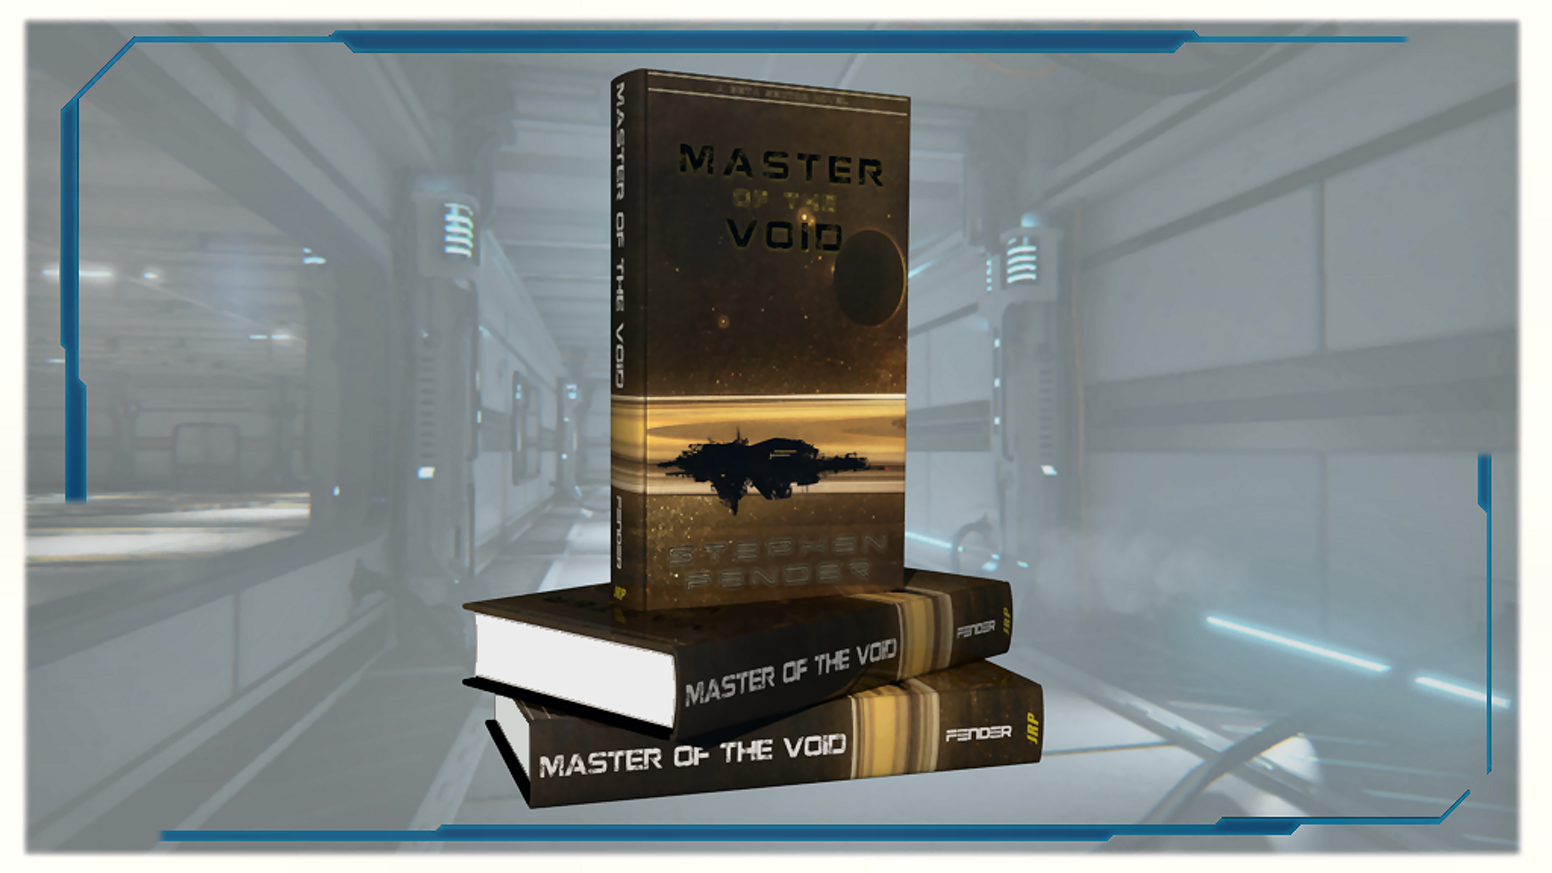 A science fiction journey beyond the boundaries of charted space, filled with discovery and danger in a time of galactic upheaval.